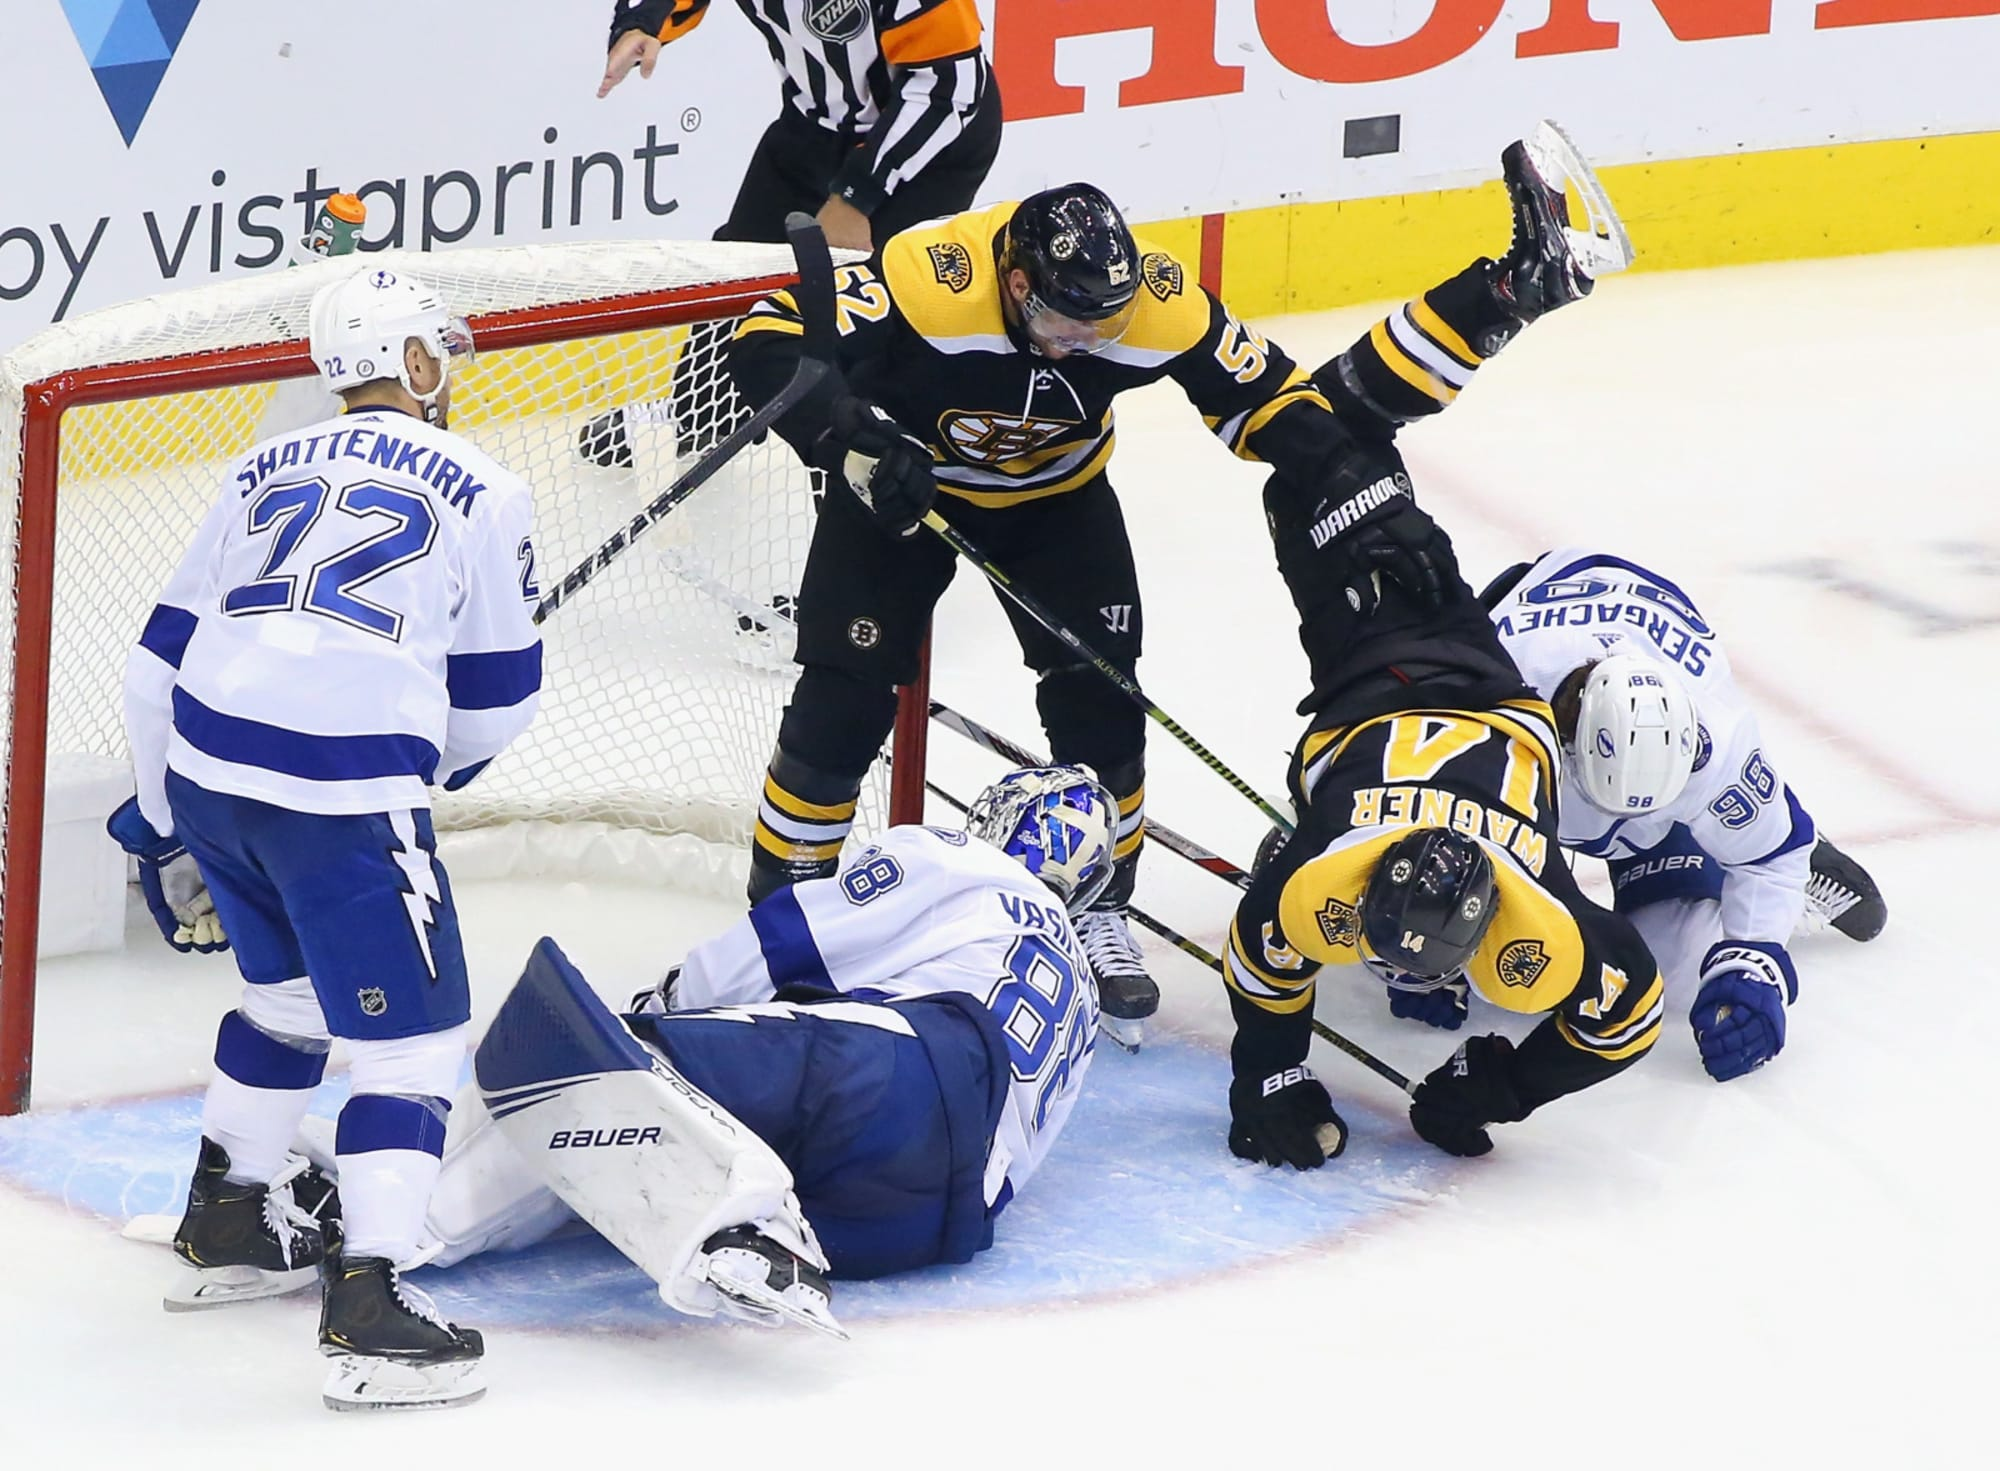 Boston Bruins: How Challenging Do We Want To Make This Summer?